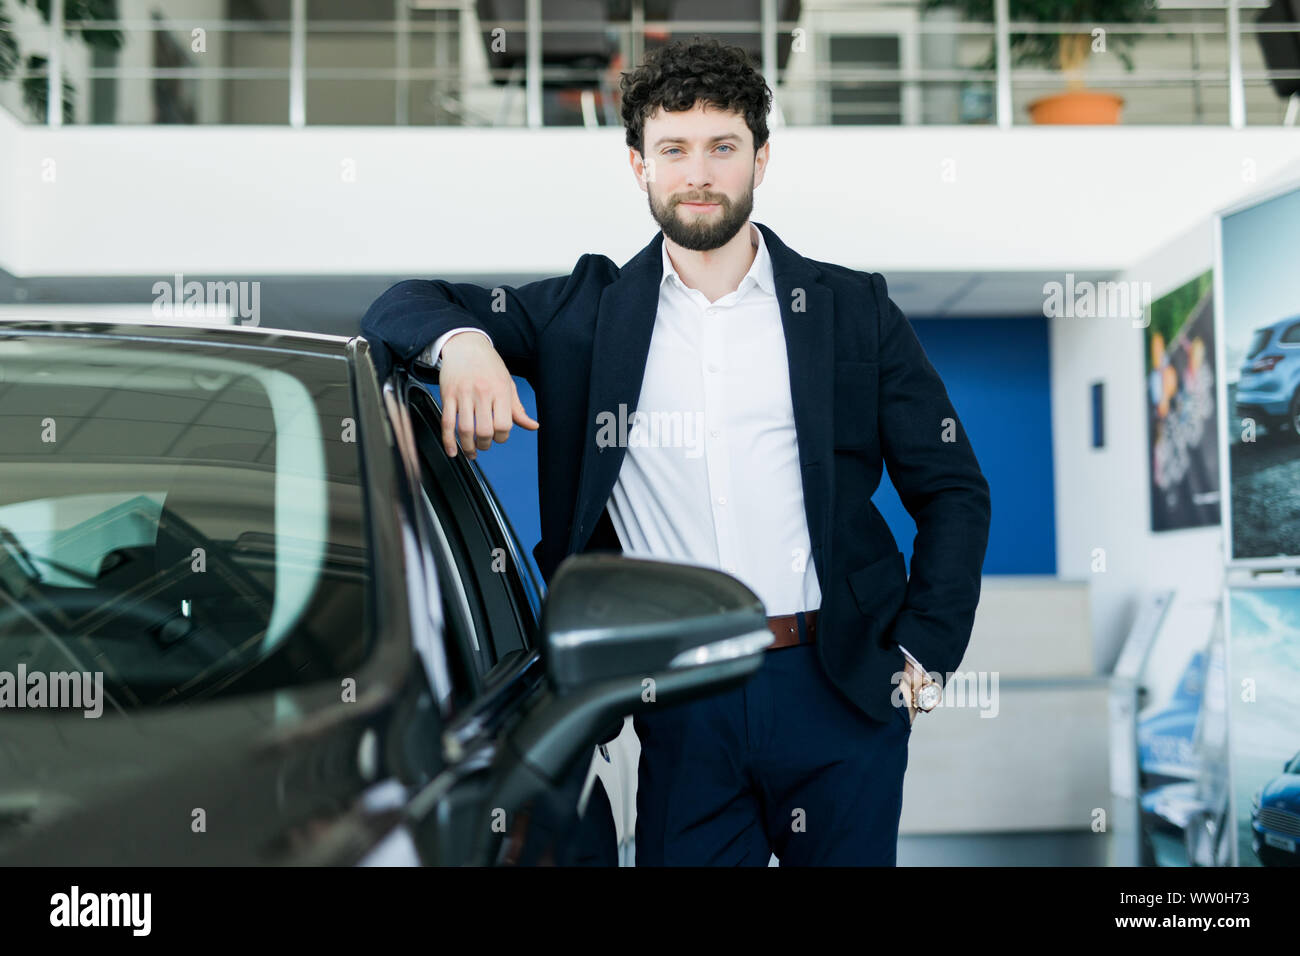 Car Showroom Happy Man With Keys To The Car Of His Dreams Stock Photo Alamy